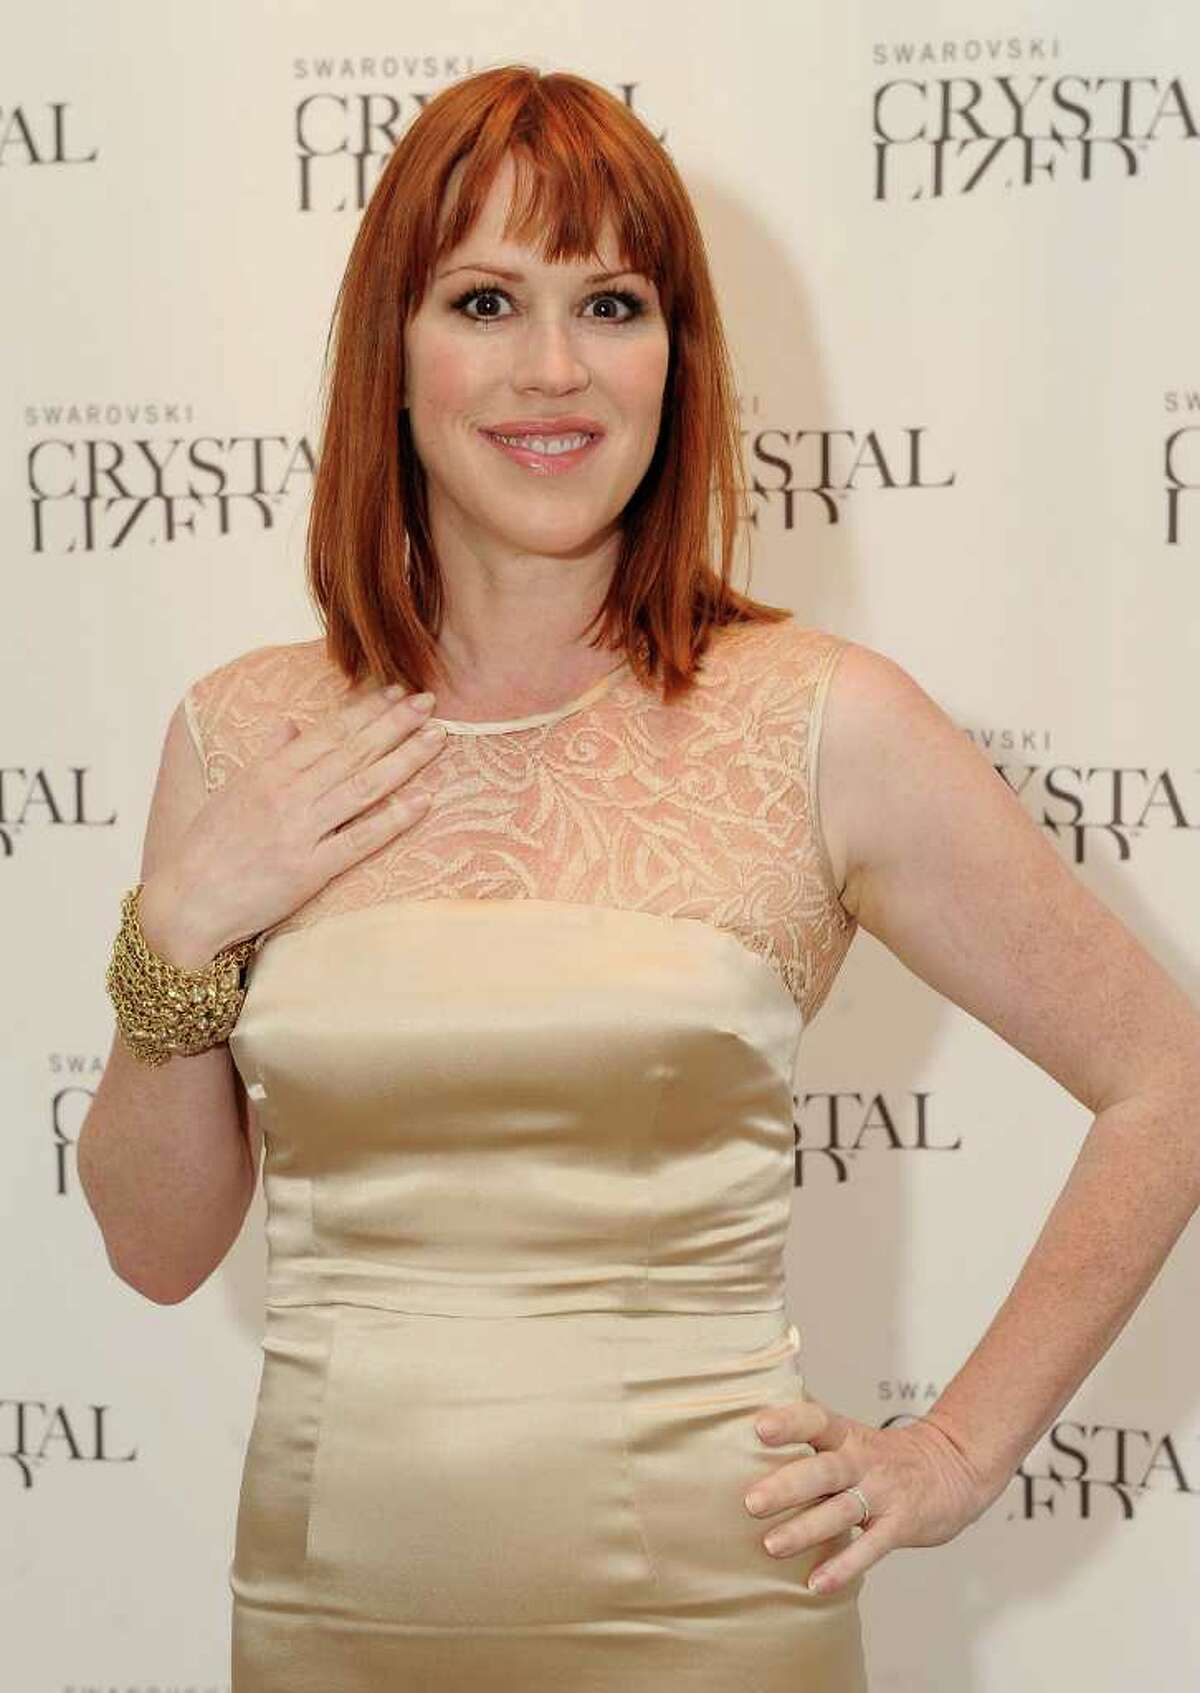 NEW YORK - APRIL 27: Actress/author Molly Ringwald attends the Molly Ringwald book launch hosted by Swarovski CRYSTALLIZED at Swarovski CRYSTALLIZED Concept Store on April 27, 2010 in New York City. (Photo by Stephen Lovekin/Getty Images for Swarovski)